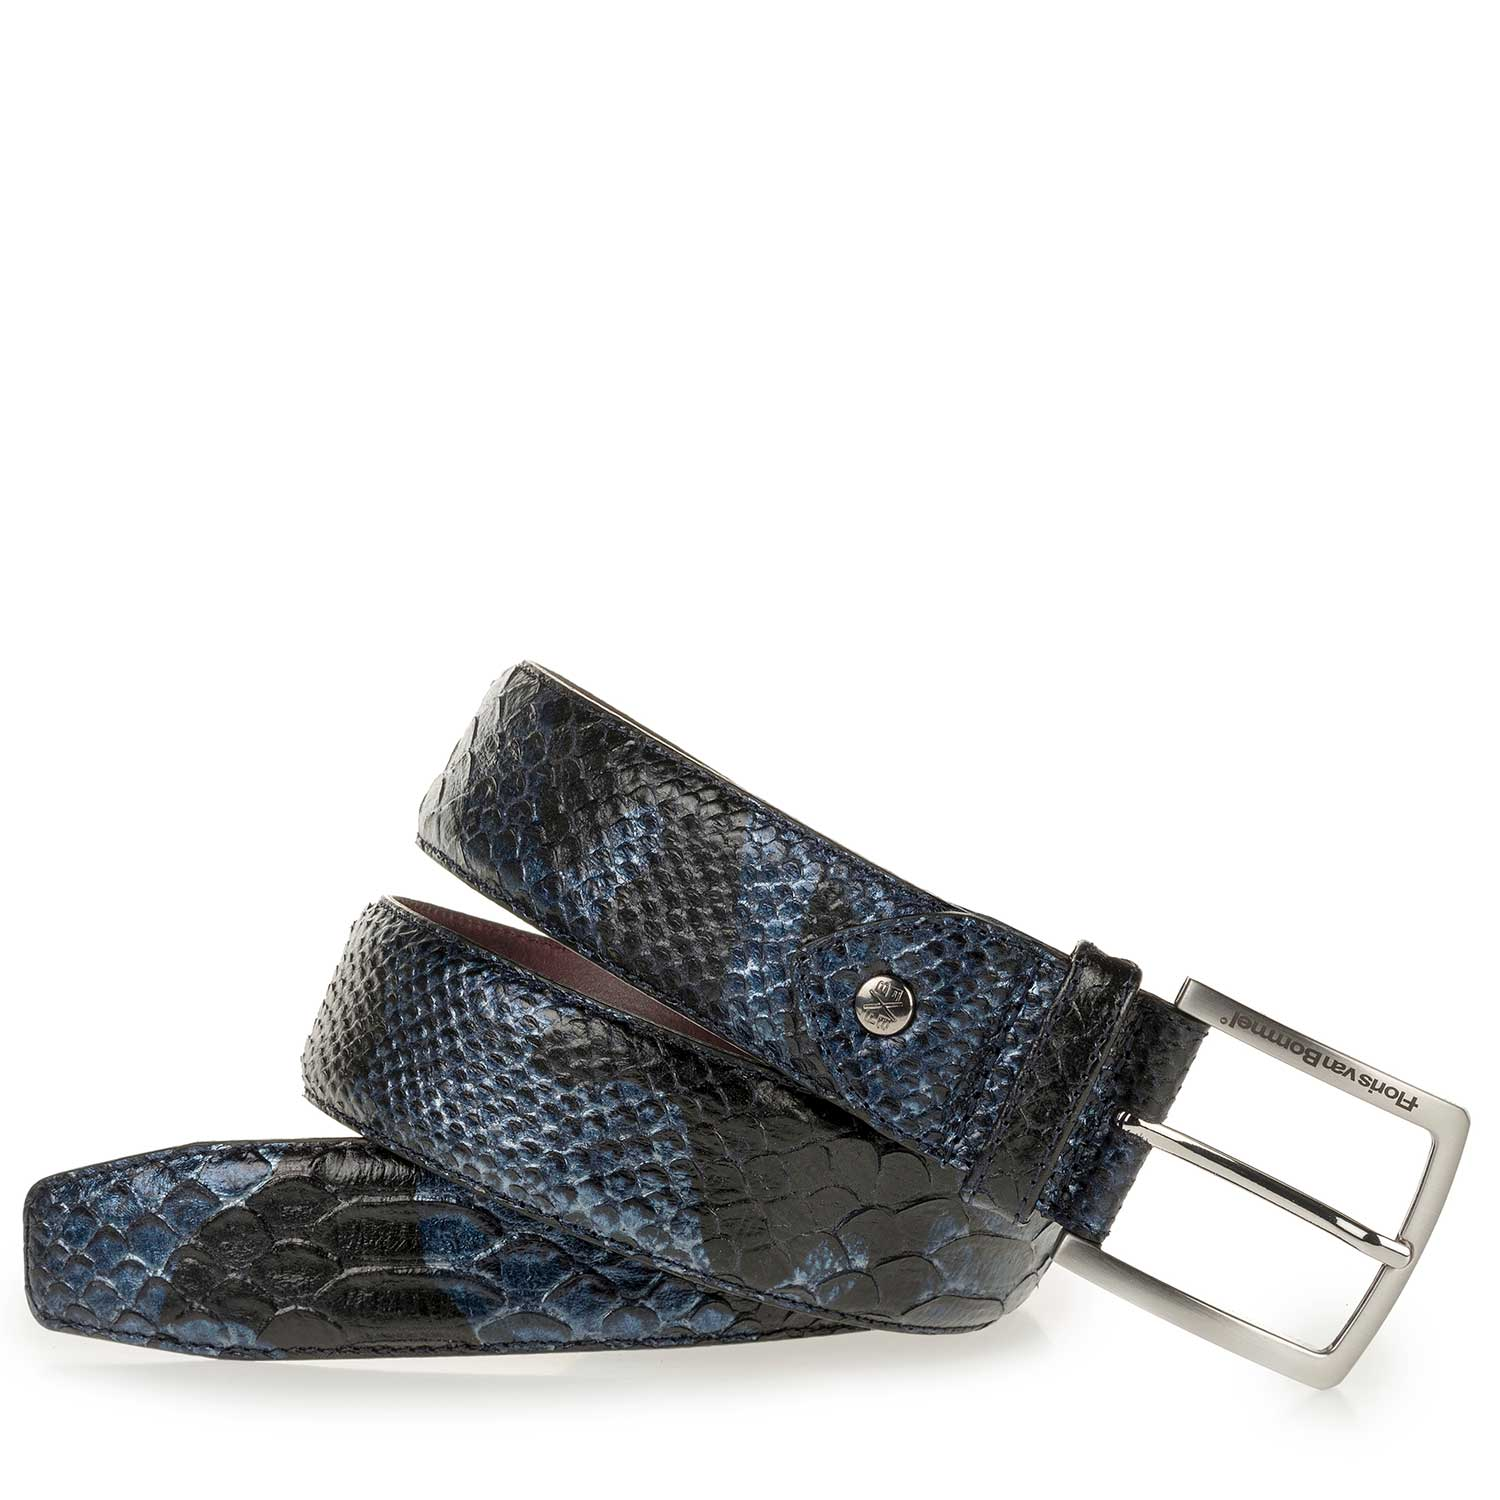 75189/37 - Blue belt with snake print